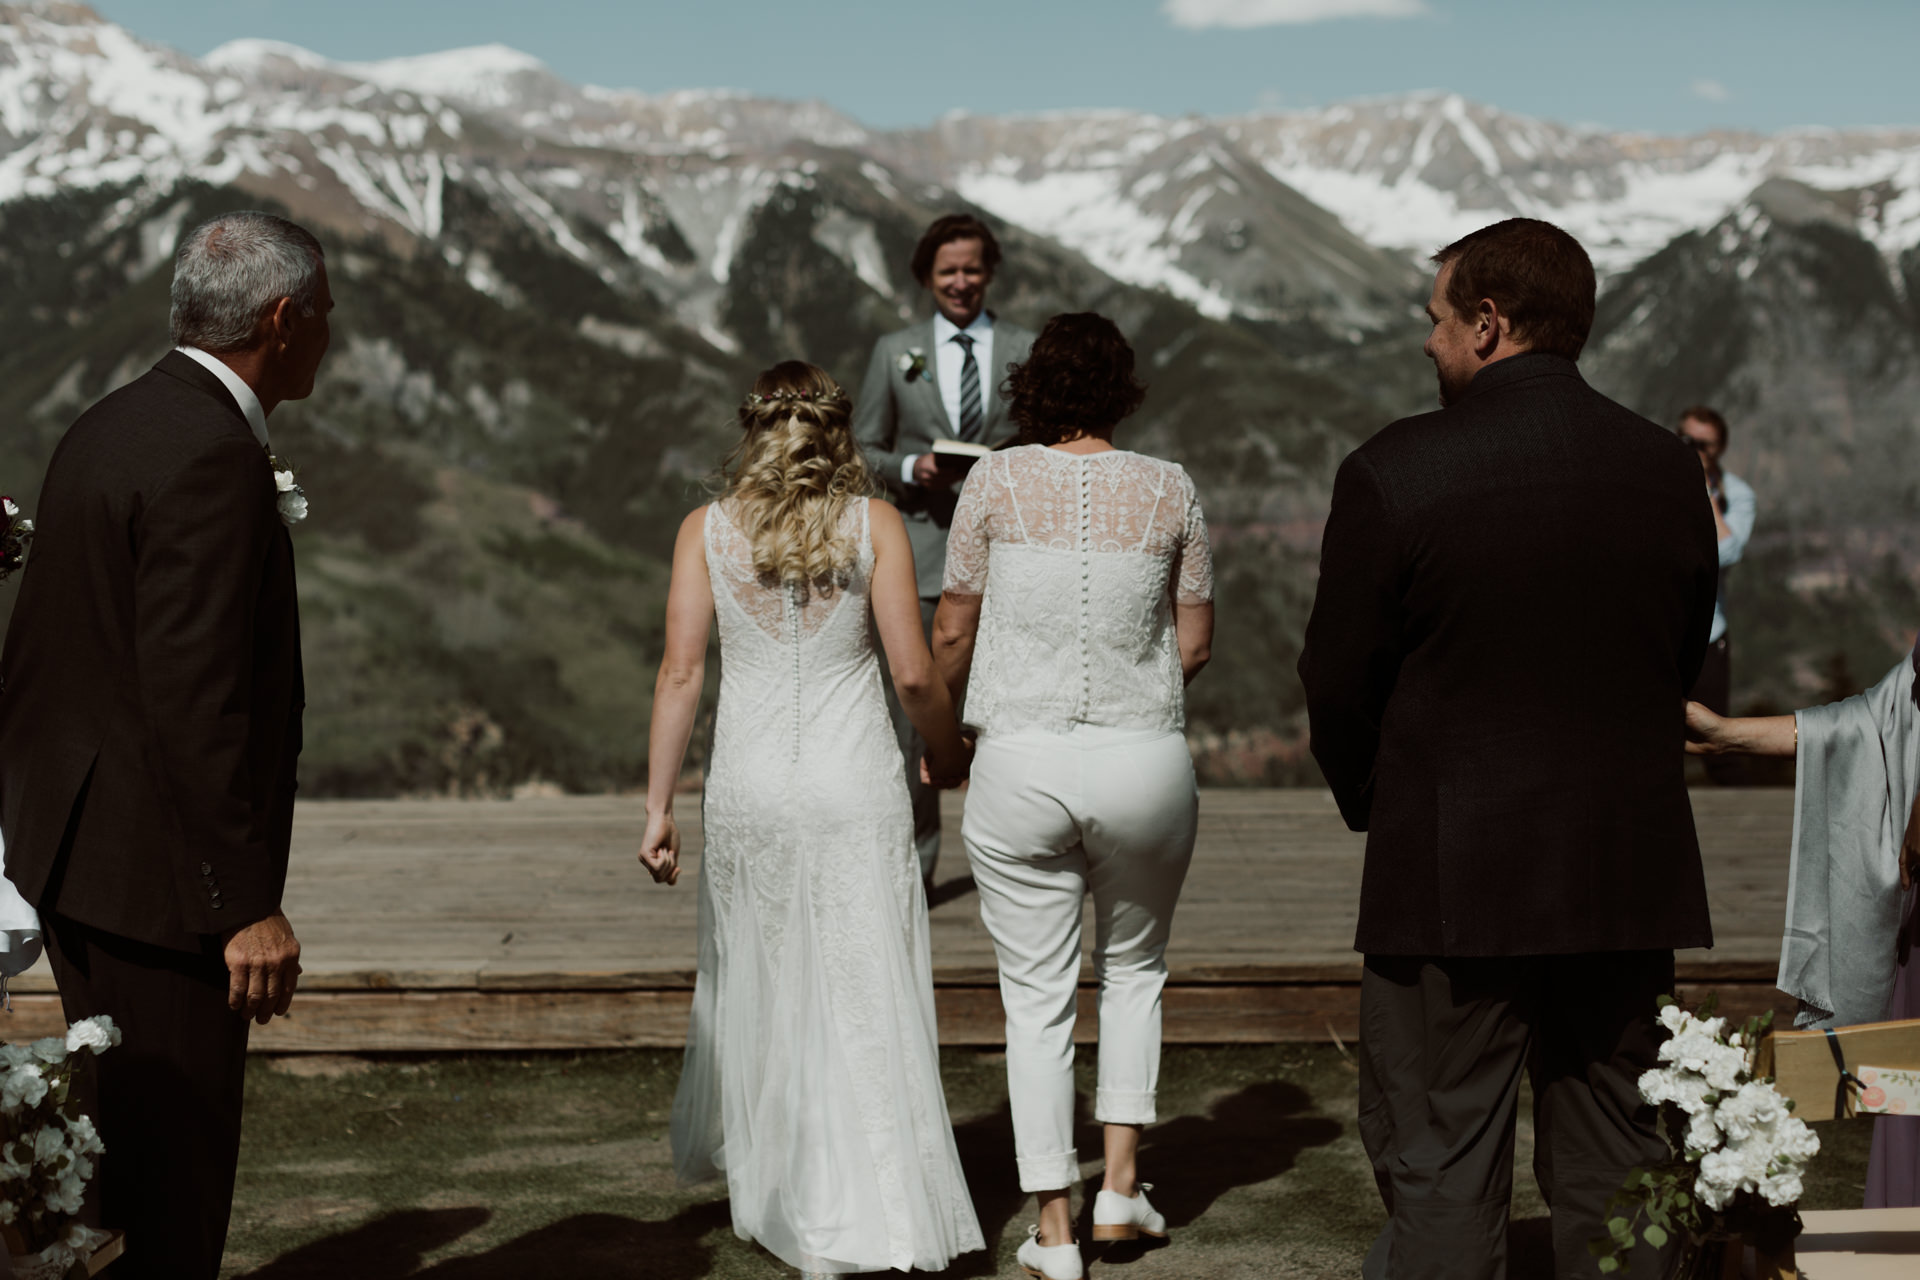 cedarandpines-intimate-san-sofia-telluride-colorado-wedding-15.jpg